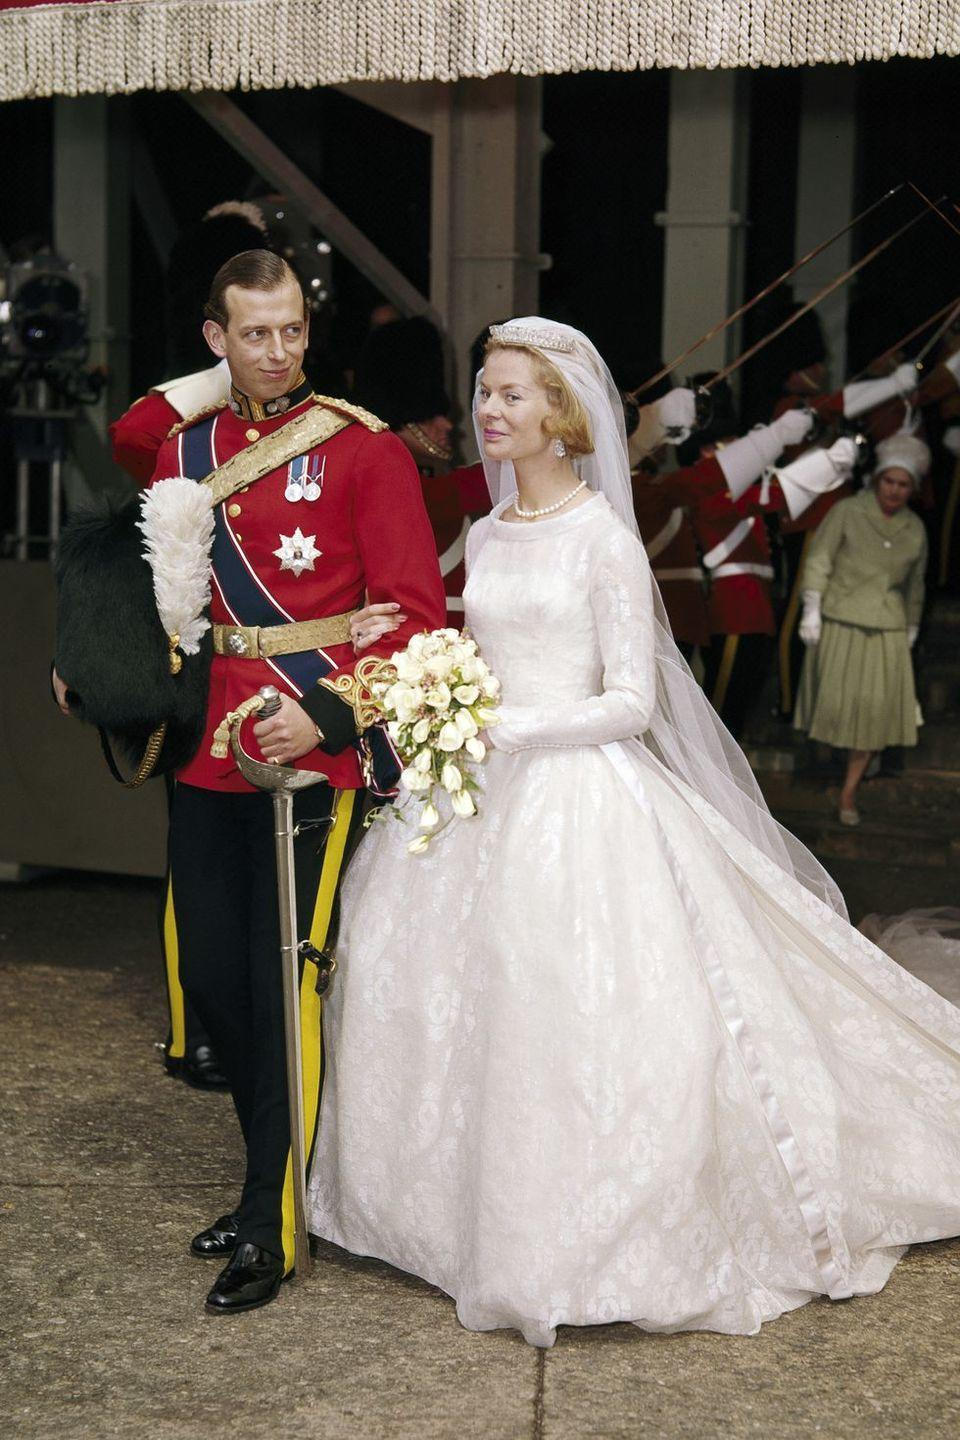 <p><strong>Wedding date: </strong>June 8, 1961</p><p><strong>Wedding tiara; </strong>Katharine, Duchess of Kent wore the Kent Diamond and Pearl Fringe Tiara when she married Prince Edward, Duke of Kent. The tiara had been given to her by her mother-in-law, Princess Marina, and she wore it often. <br></p>